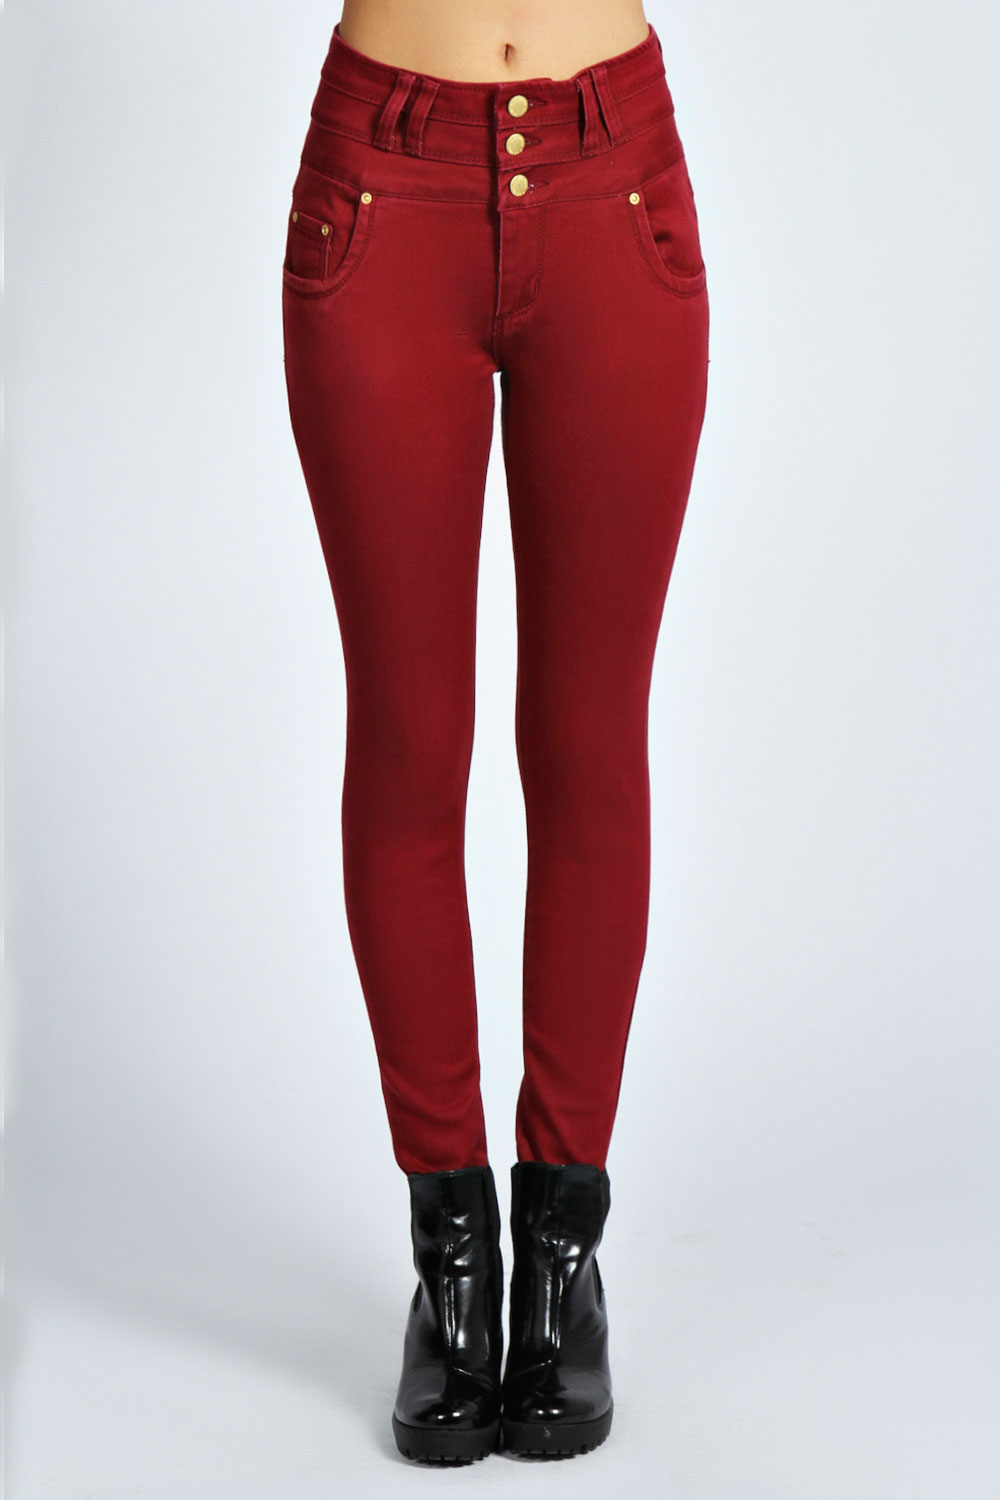 Collection High Waisted Maroon Jeans Pictures - Reikian